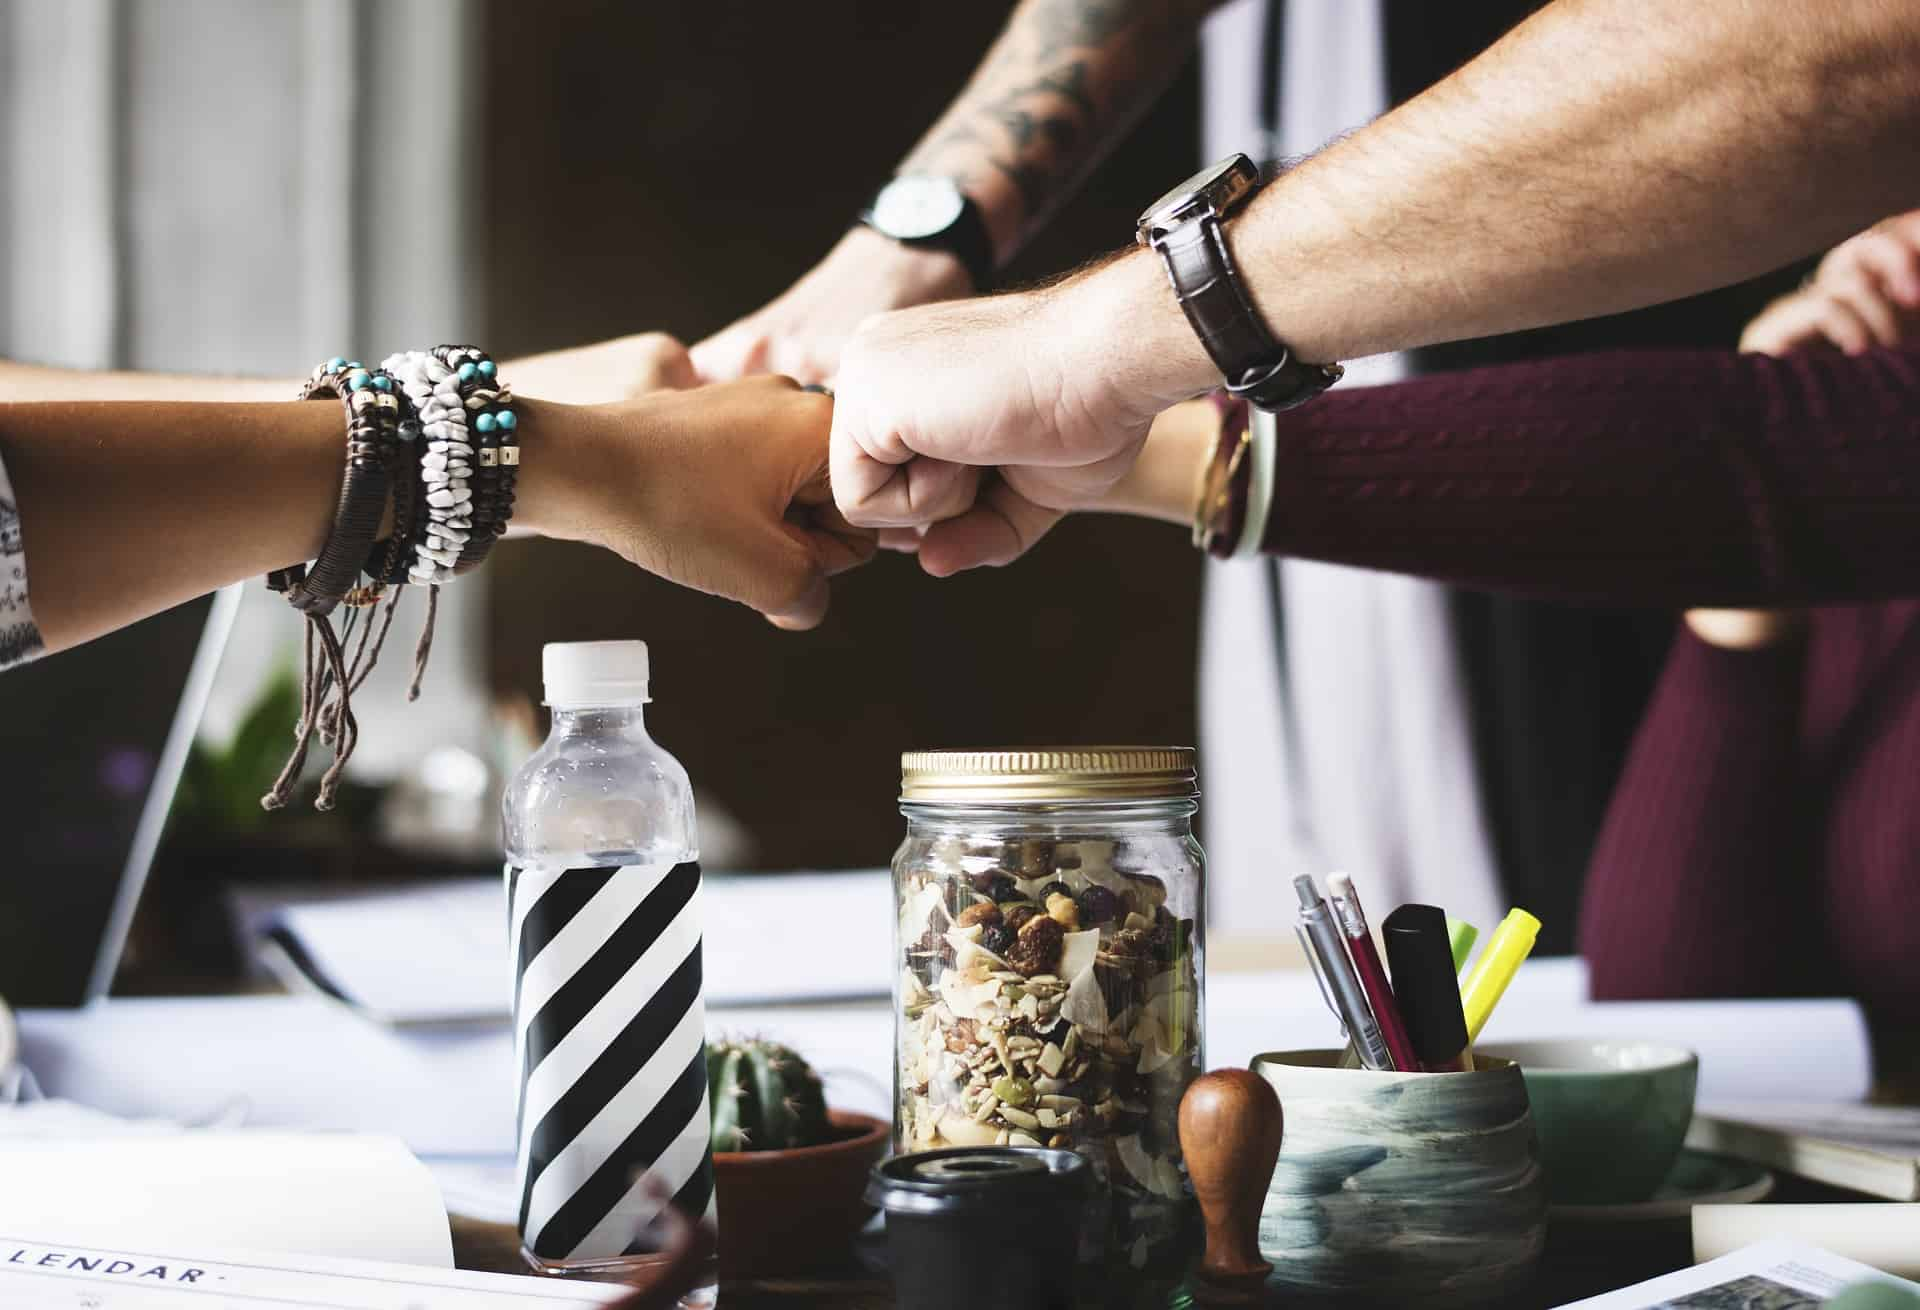 automating sales processes can increase the competitiveness in your sales team